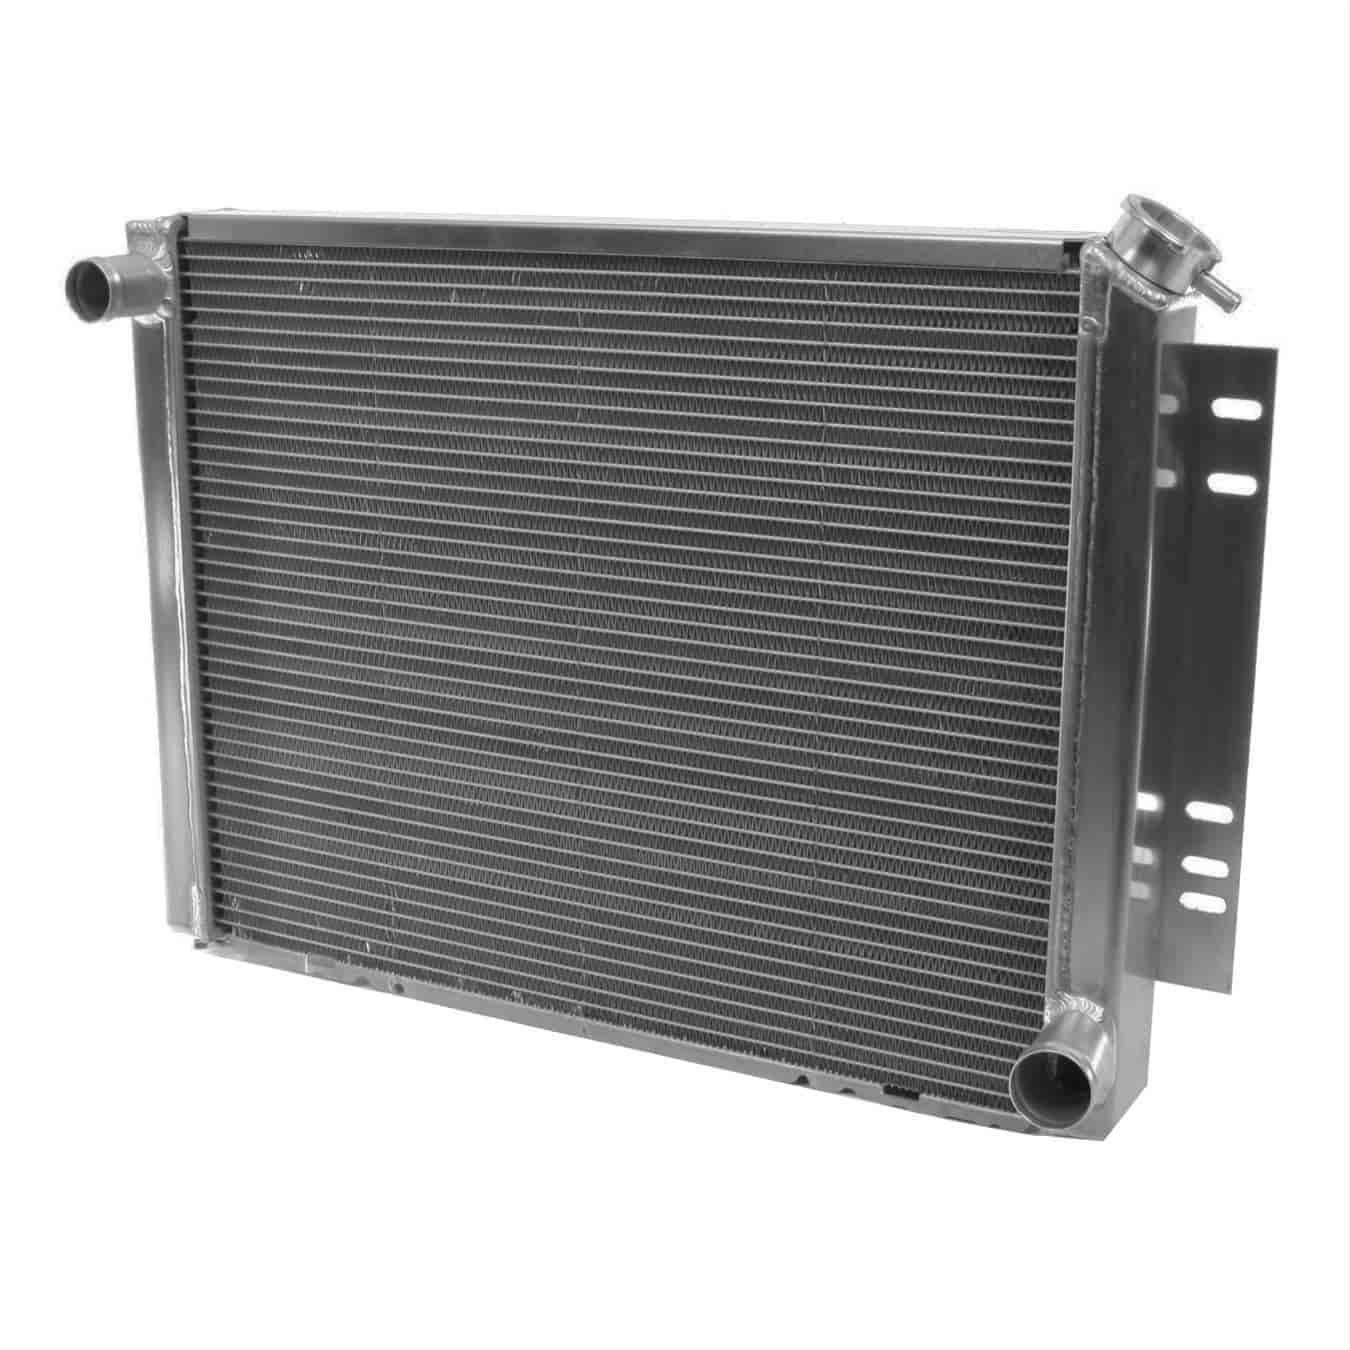 Be Cool Radiators 10016 - Be Cool Aluminator Series Custom Fit Aluminum Radiators